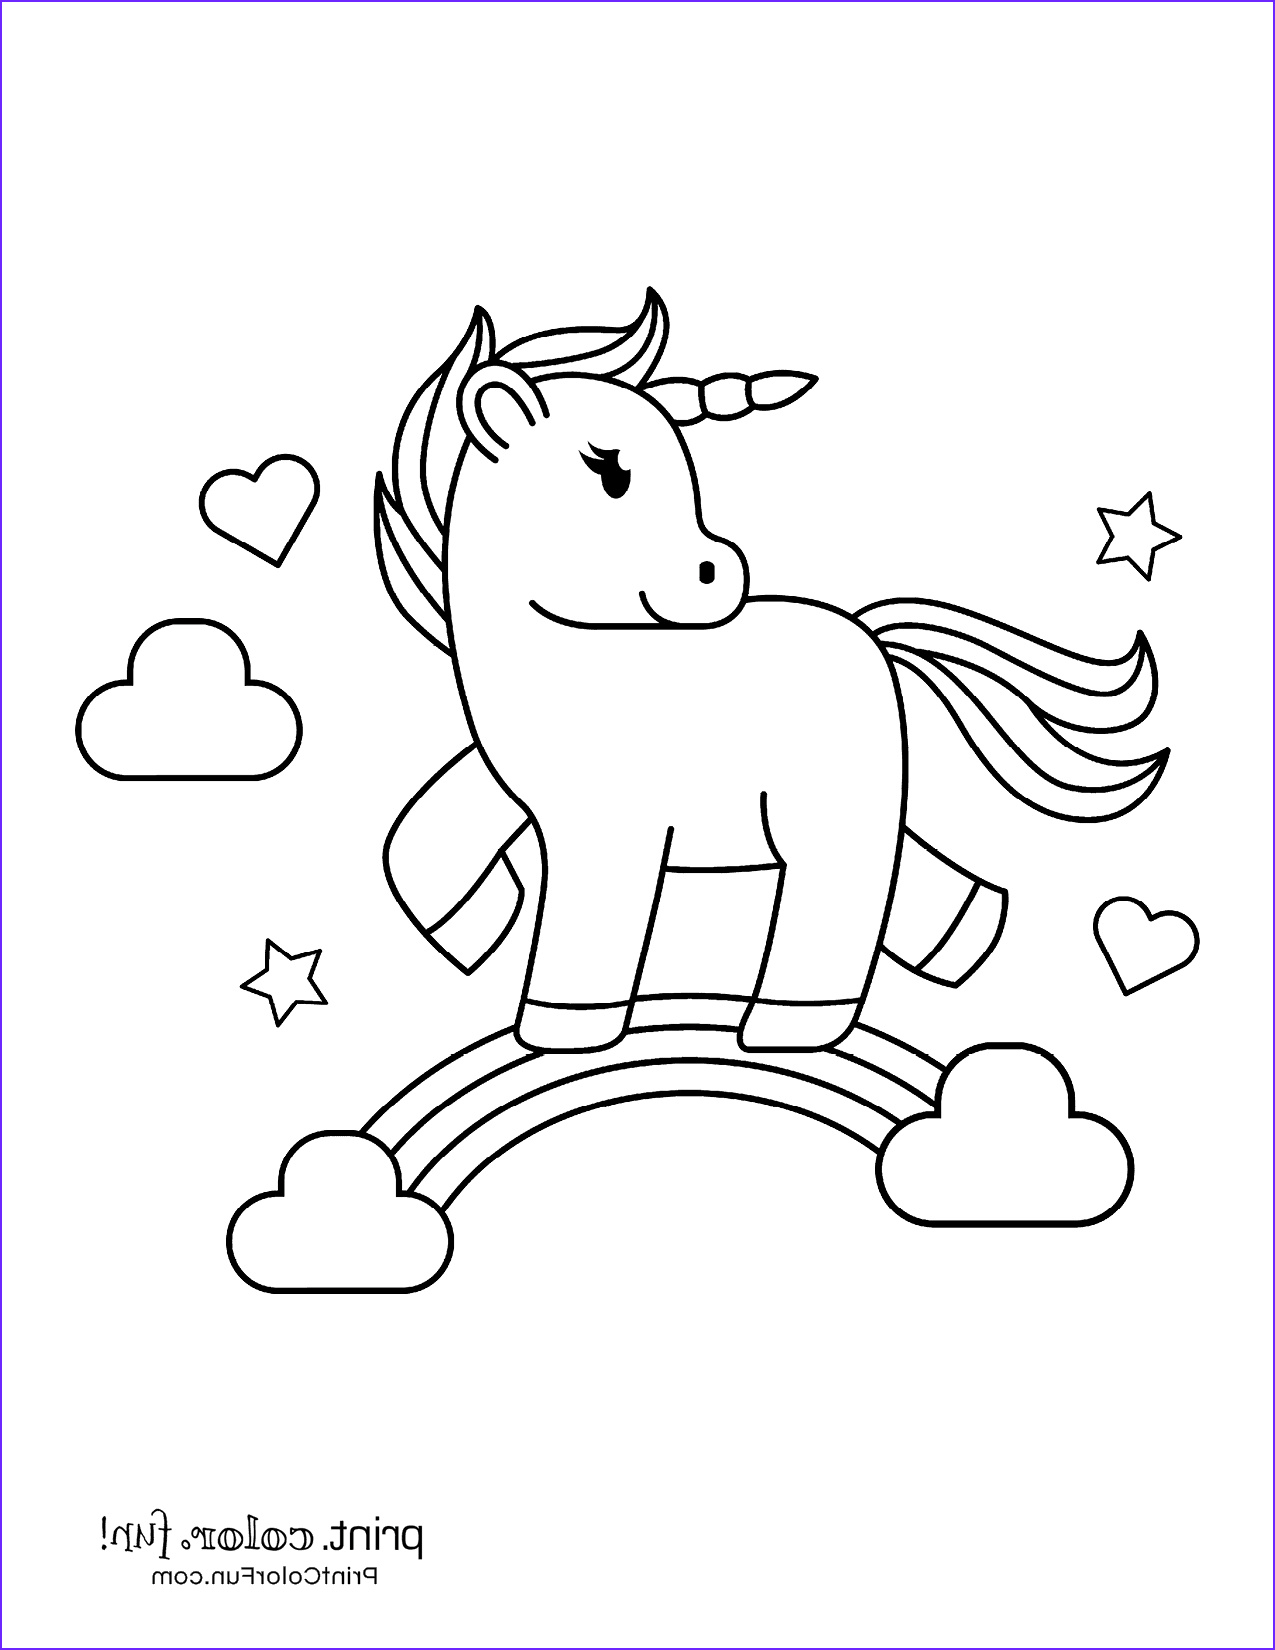 Coloring Page for Kids Unicorn New Photography Cute My Little Unicorn 5 Different Coloring Pages to